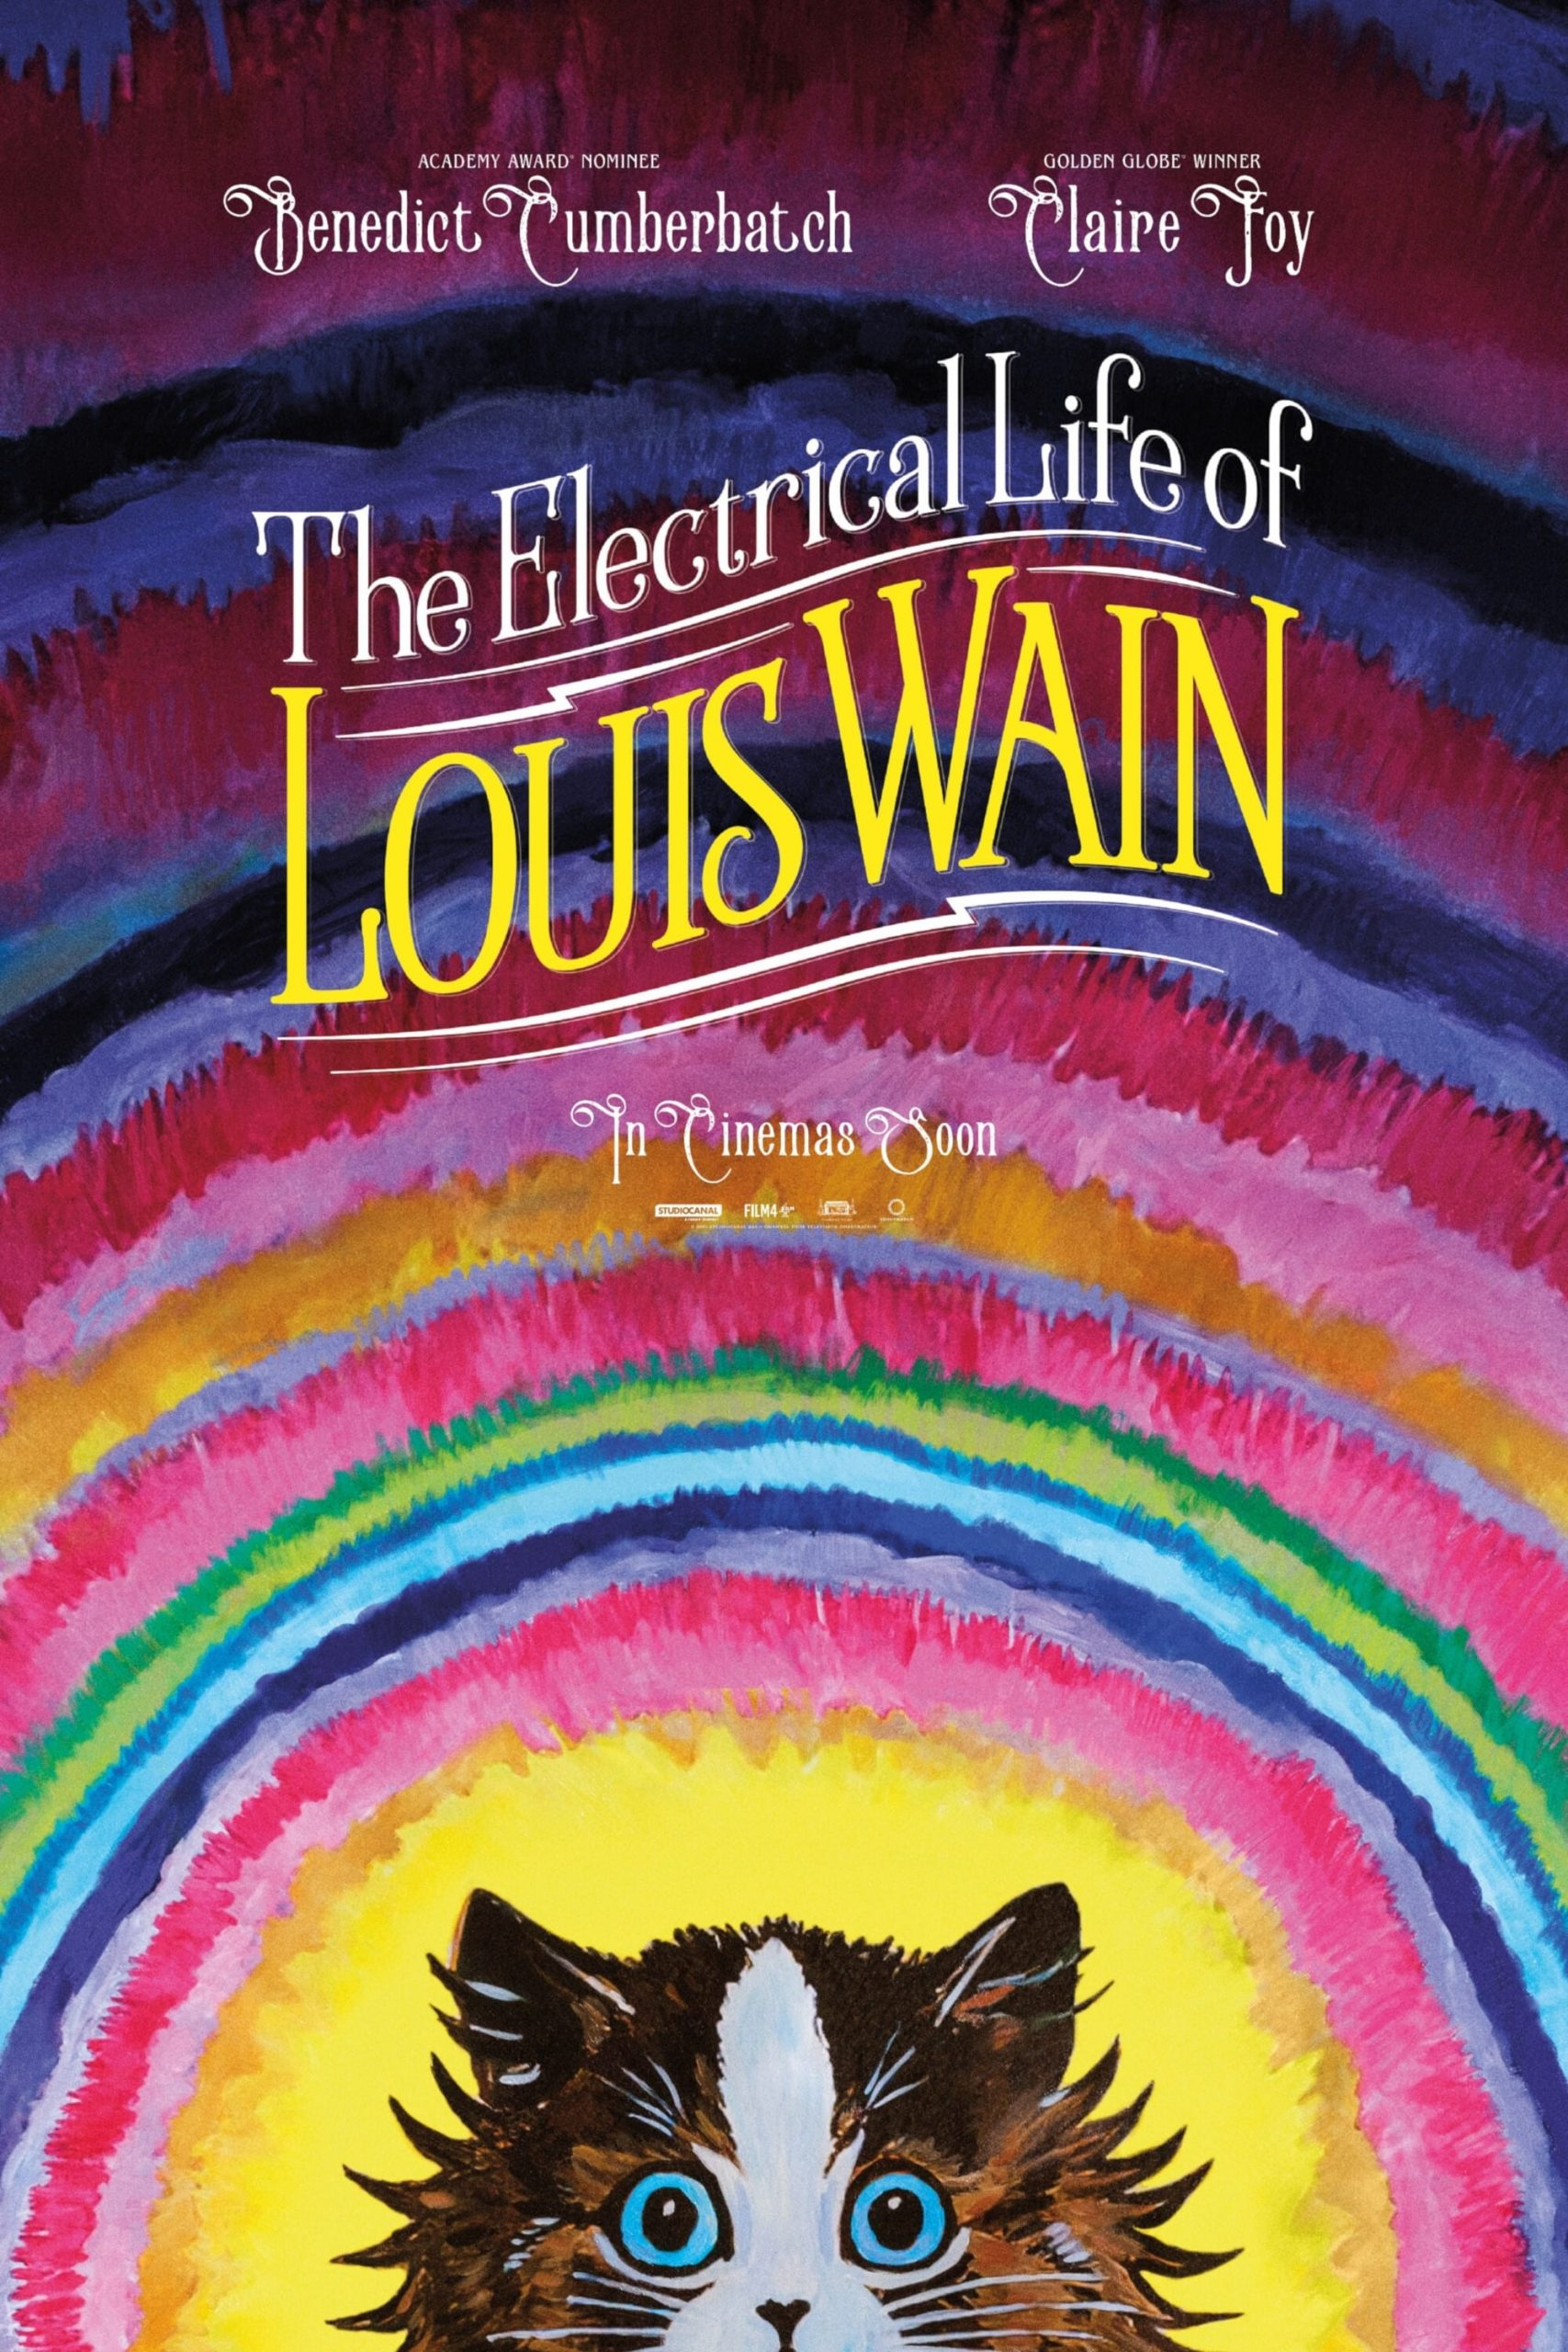 Poster for The Electrical Life of Louis Wain